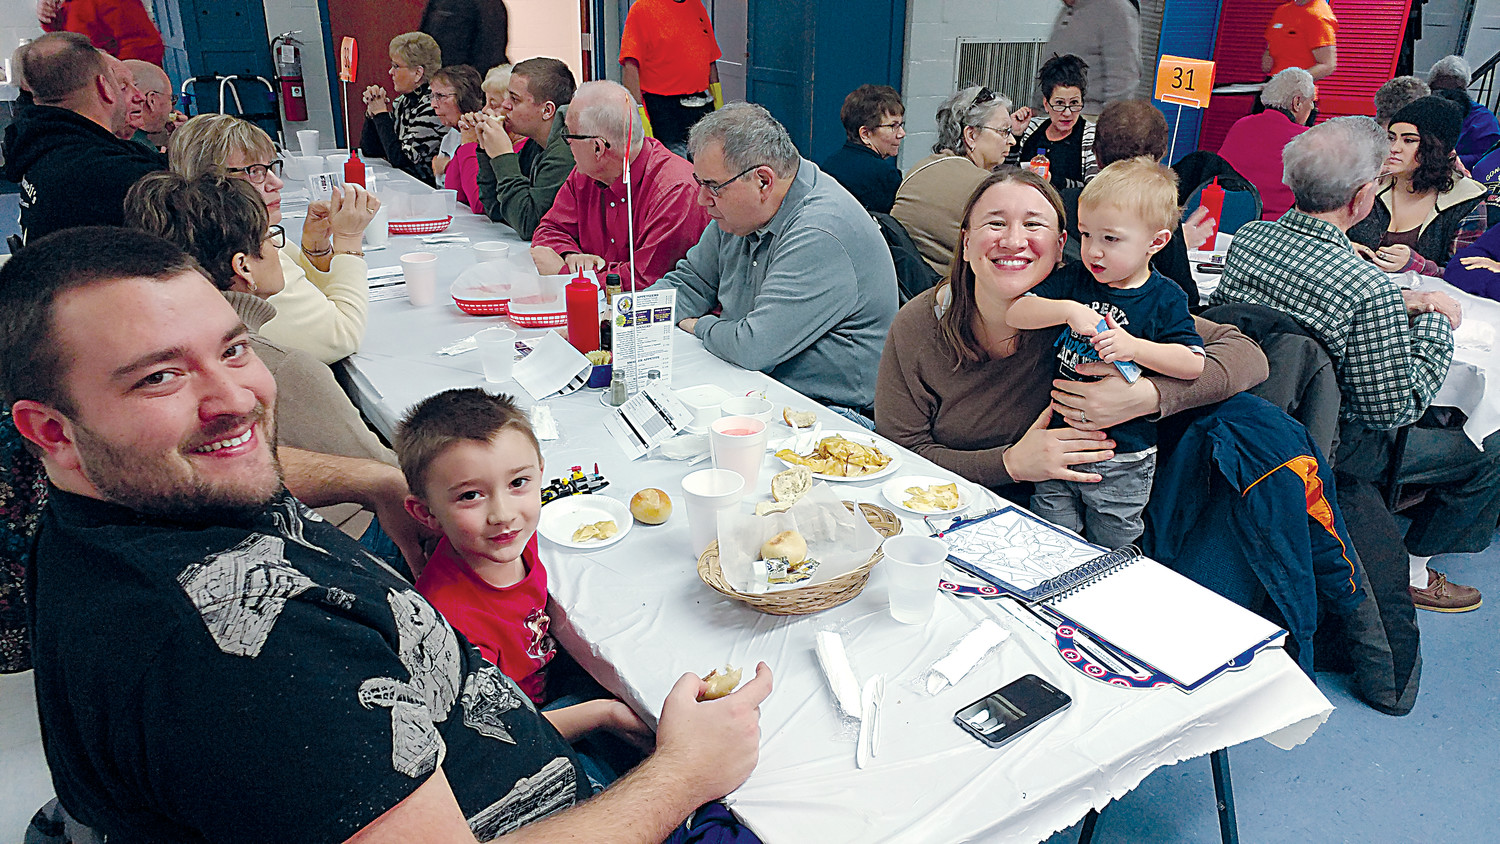 The Crone family pauses from dinner at the Seven Sorrows fish fry in 2017 Left to right are Shane, Leo, Nadine and Bennet Crone.